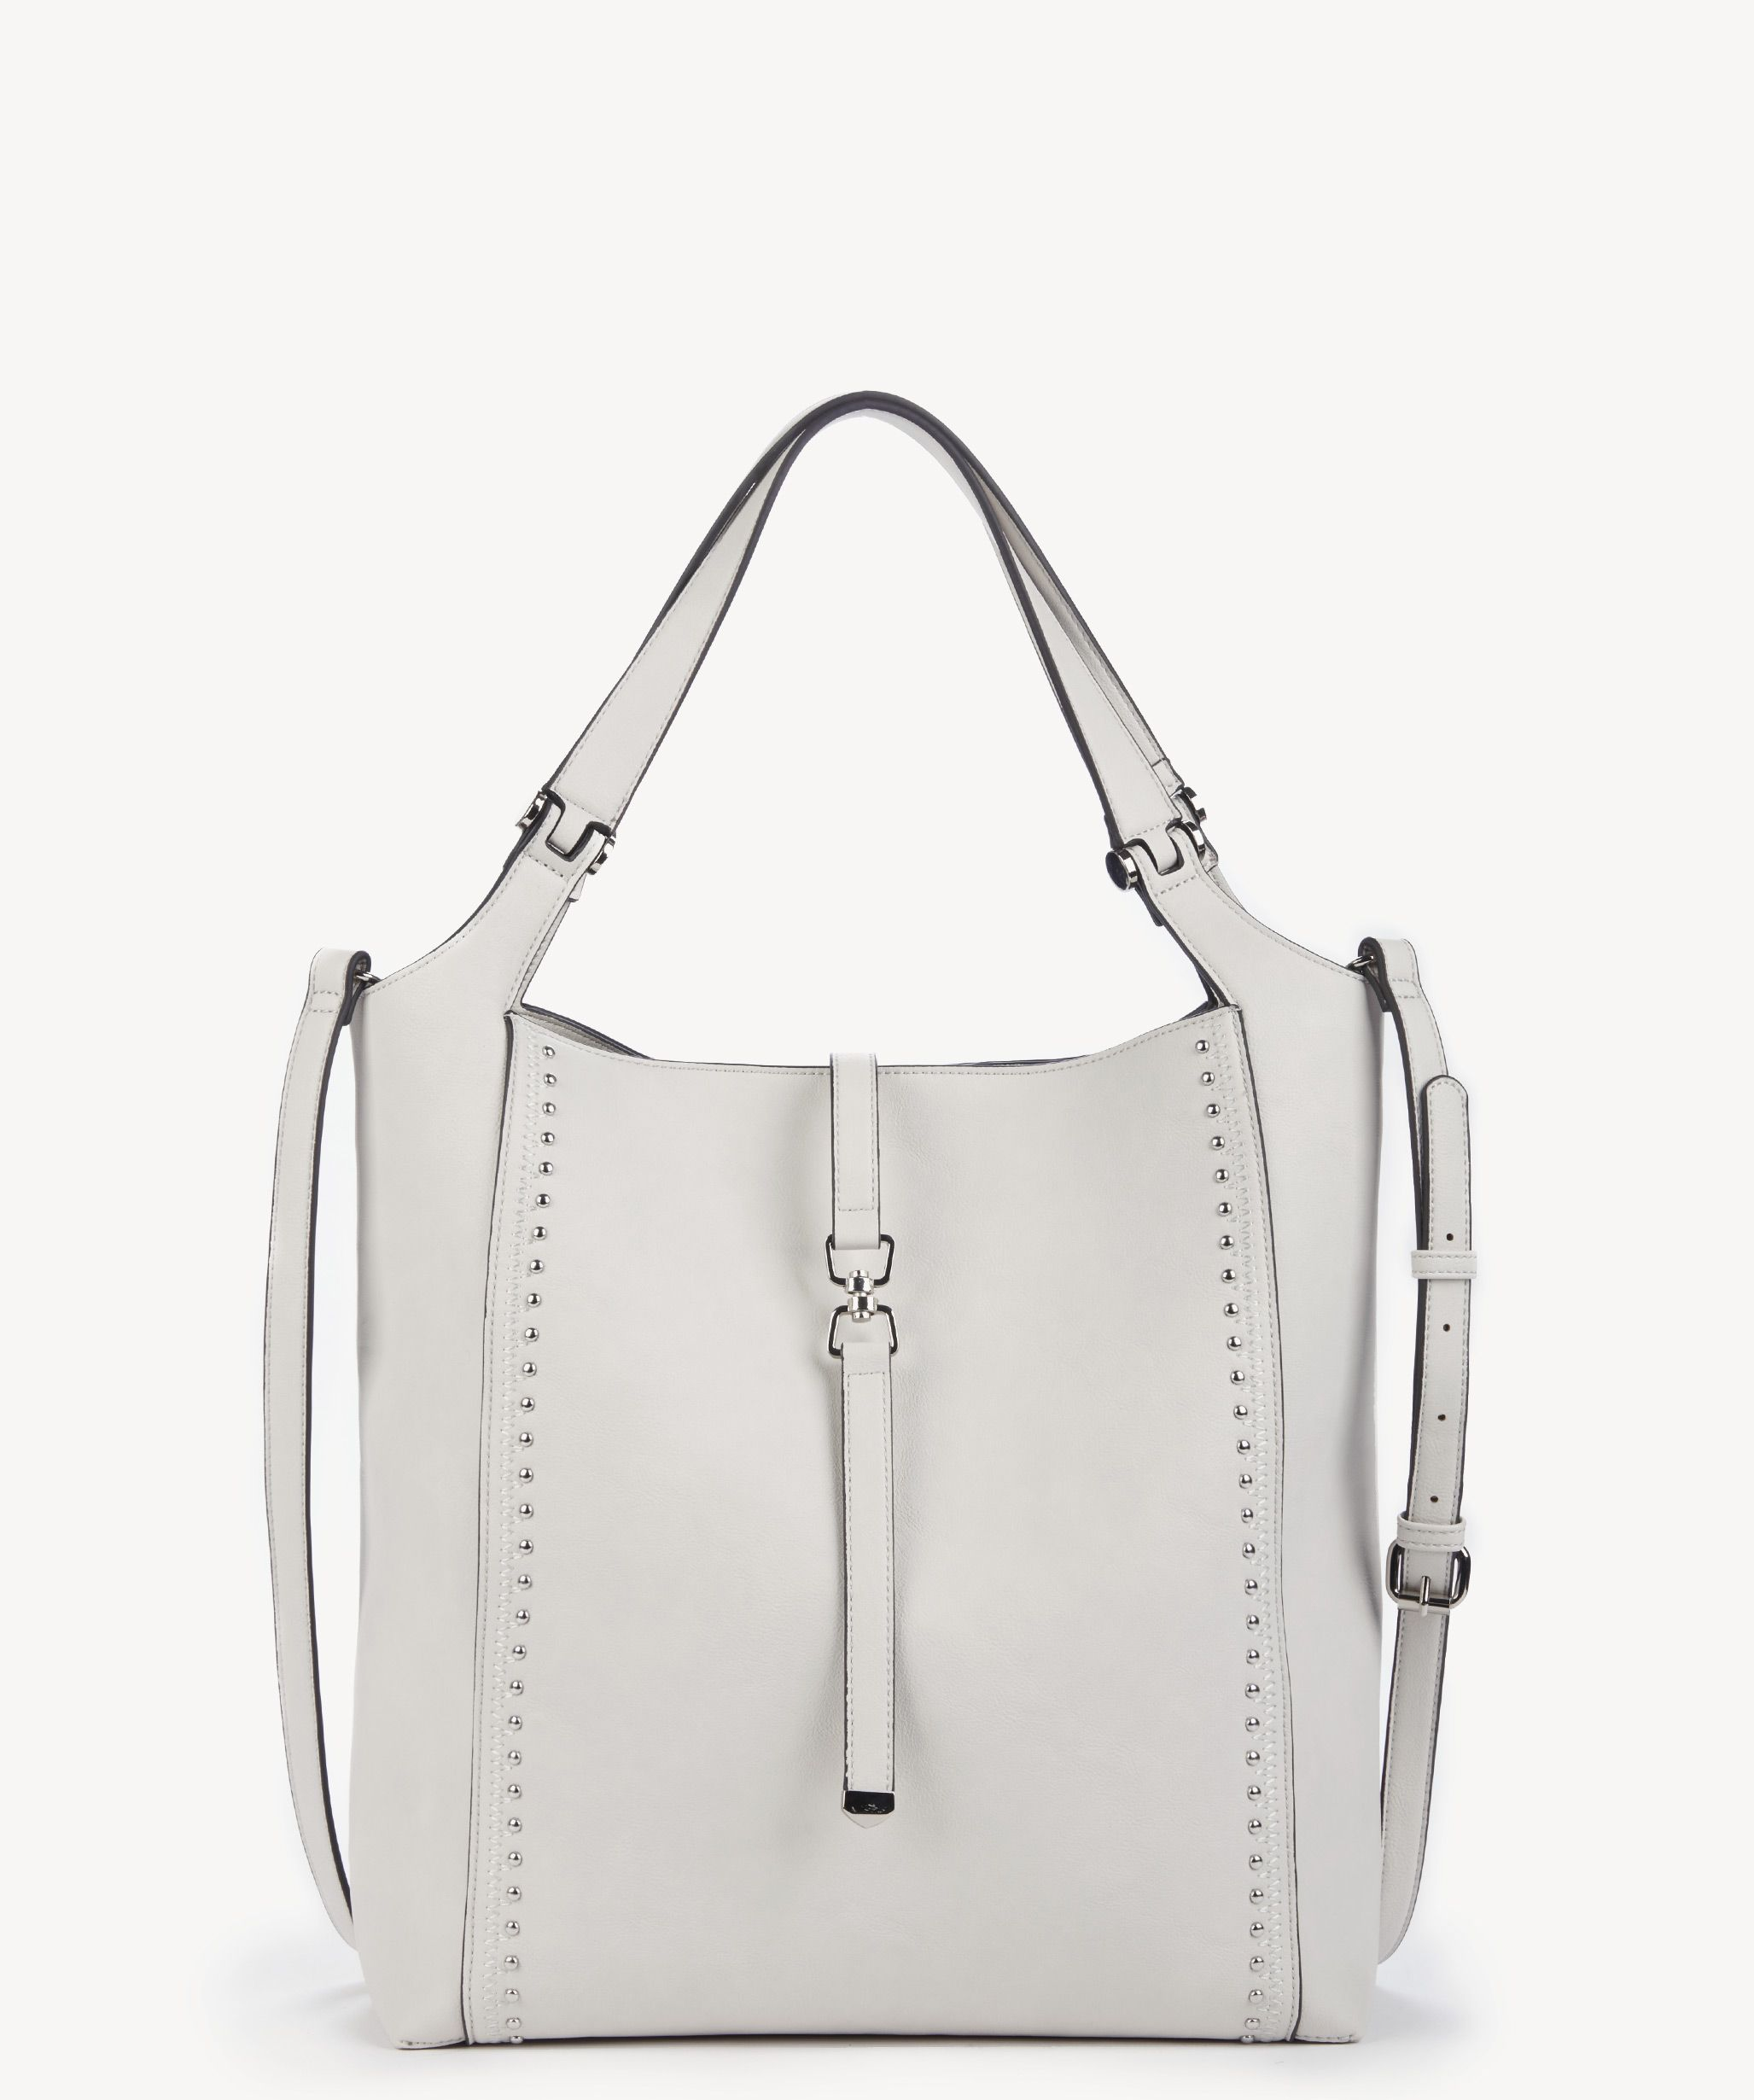 Jorie Tote - $80 at  Sole Society